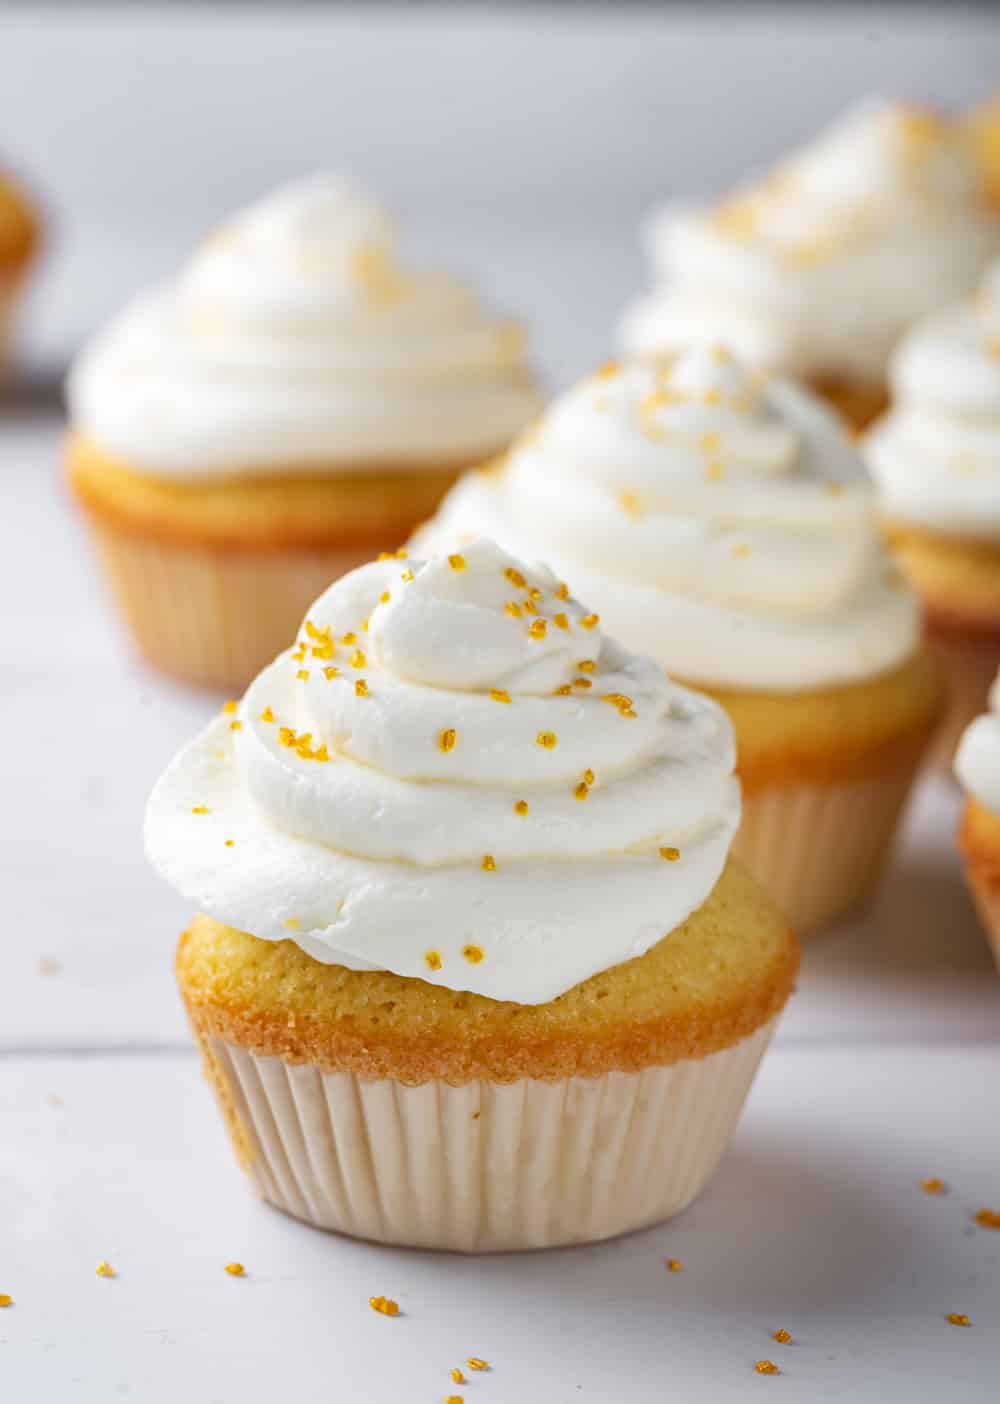 A keto vanilla cupcake with cream cheese frosting on a white counter. There are several cupcakes set behind the front cupcake.